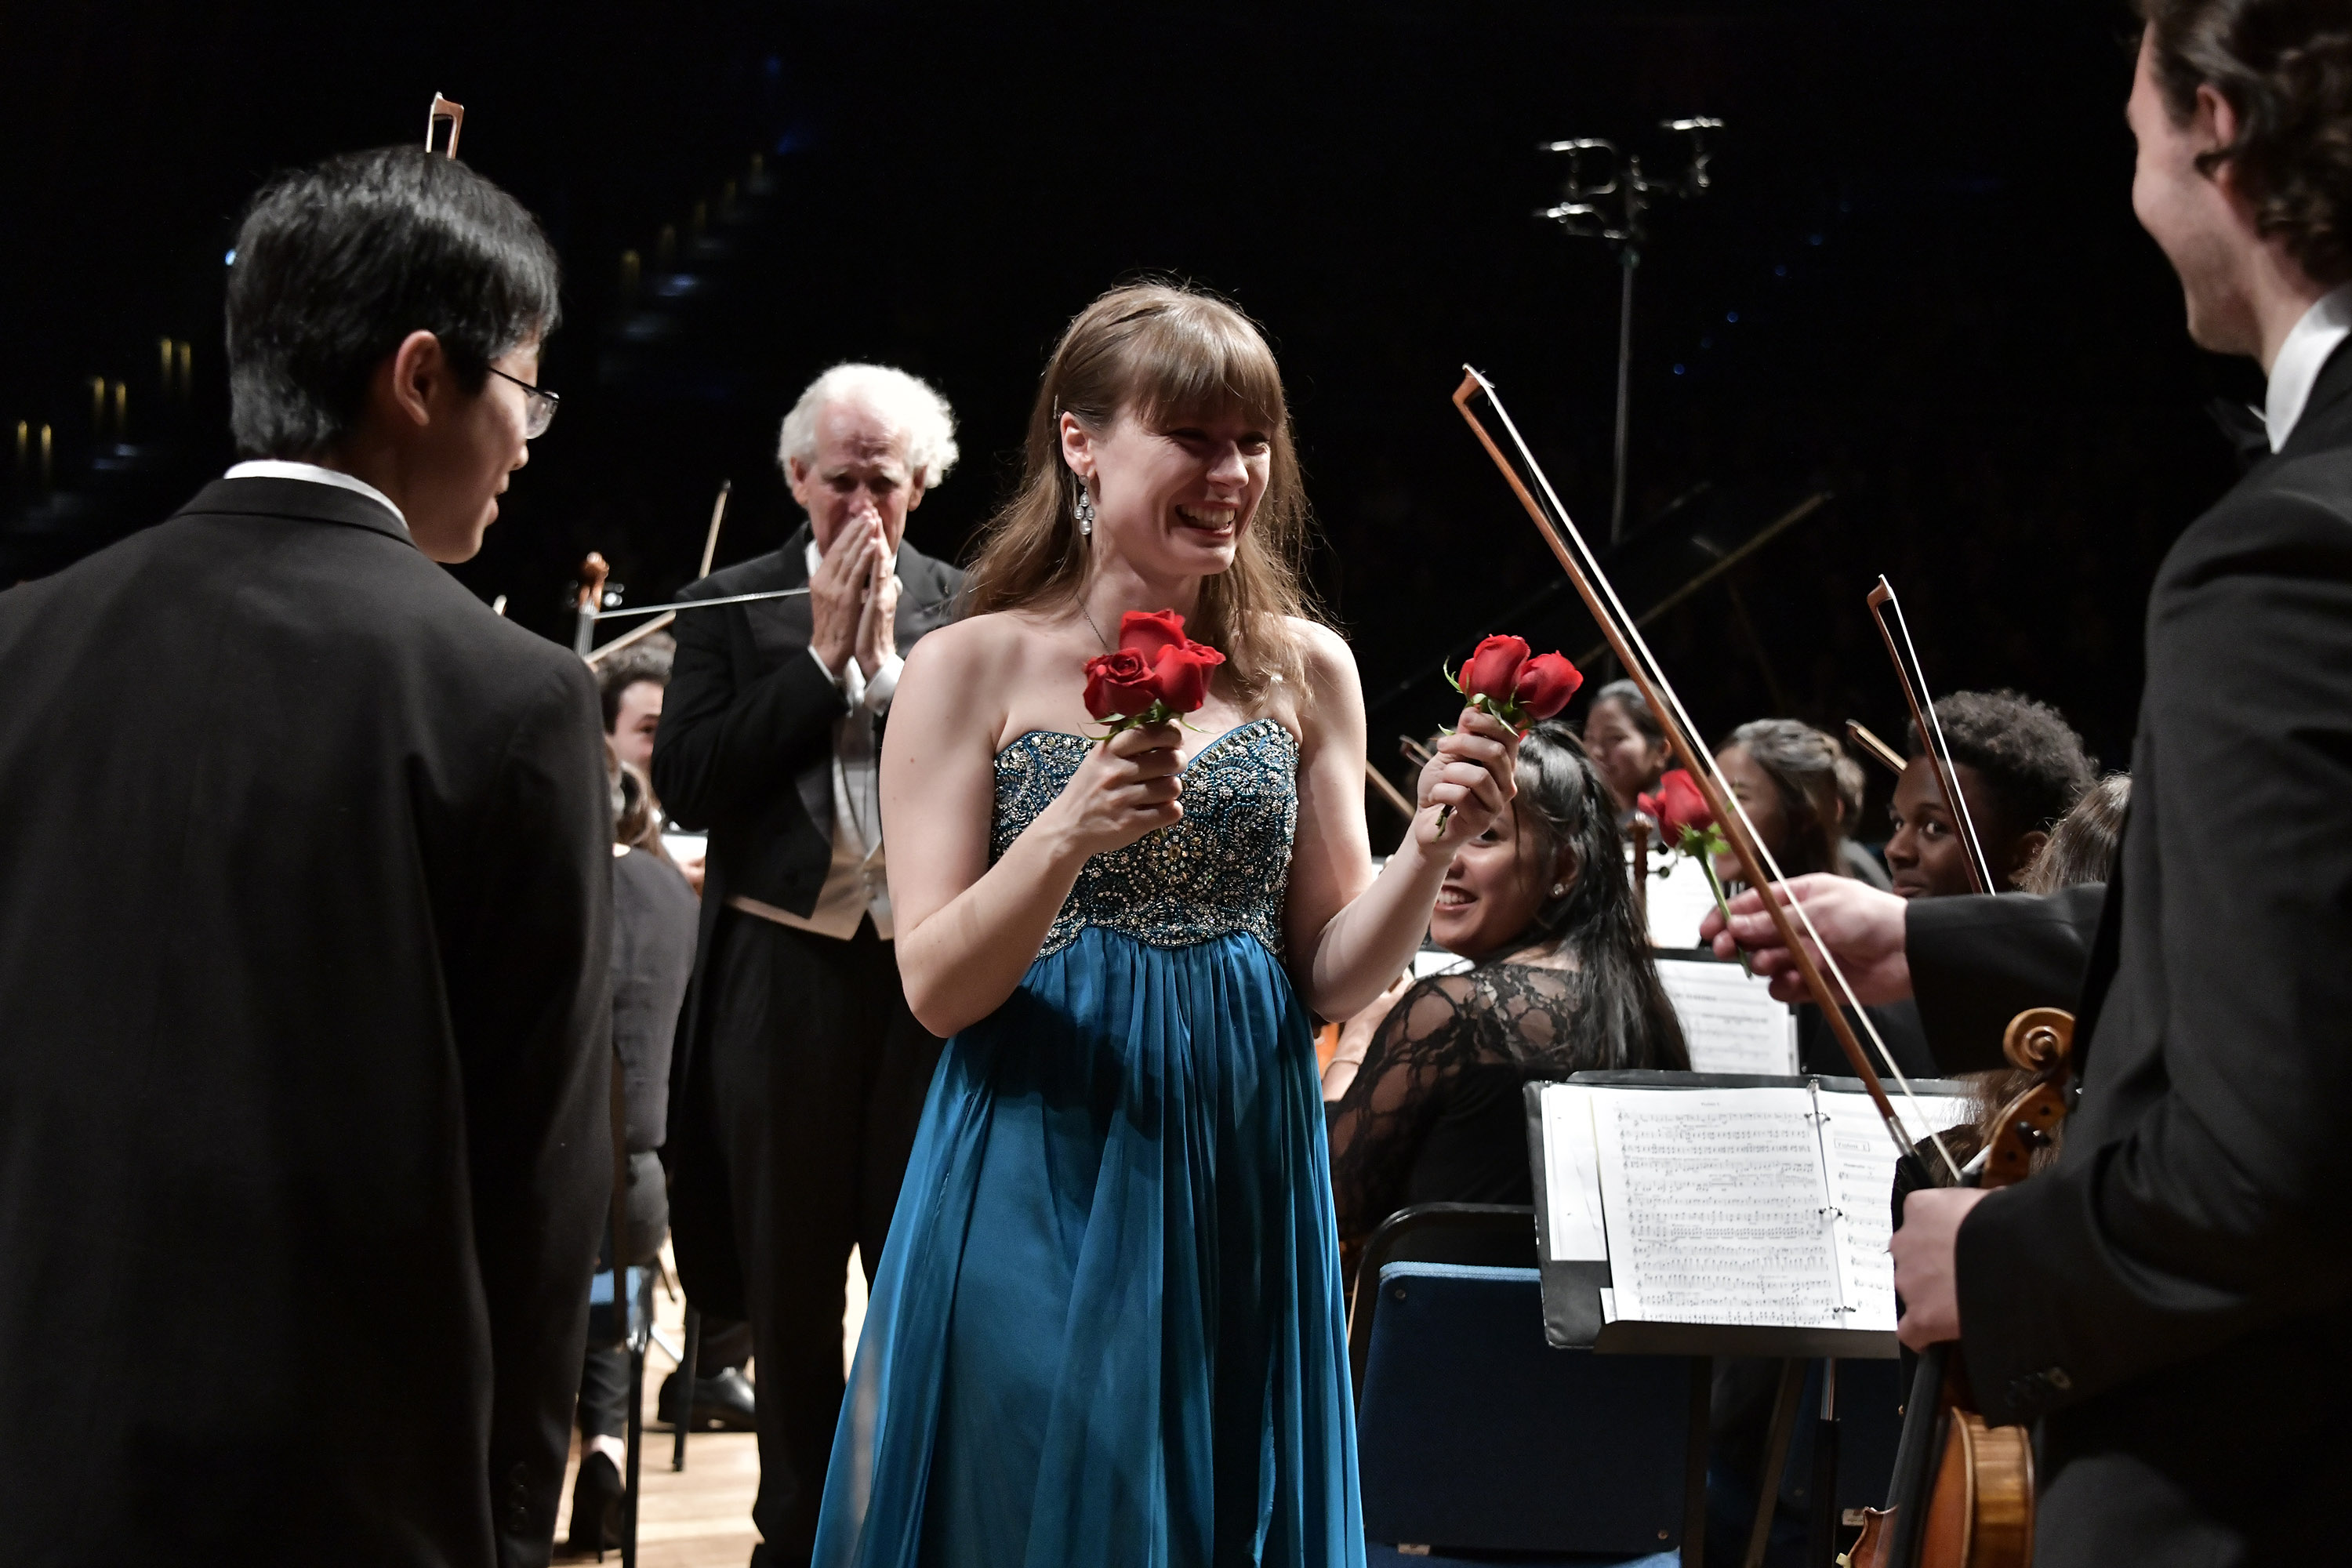 Fedorova receiving roses from BPYO violinists following her last Rach Two with the BPYO in Curitiba's Teatro Positivo